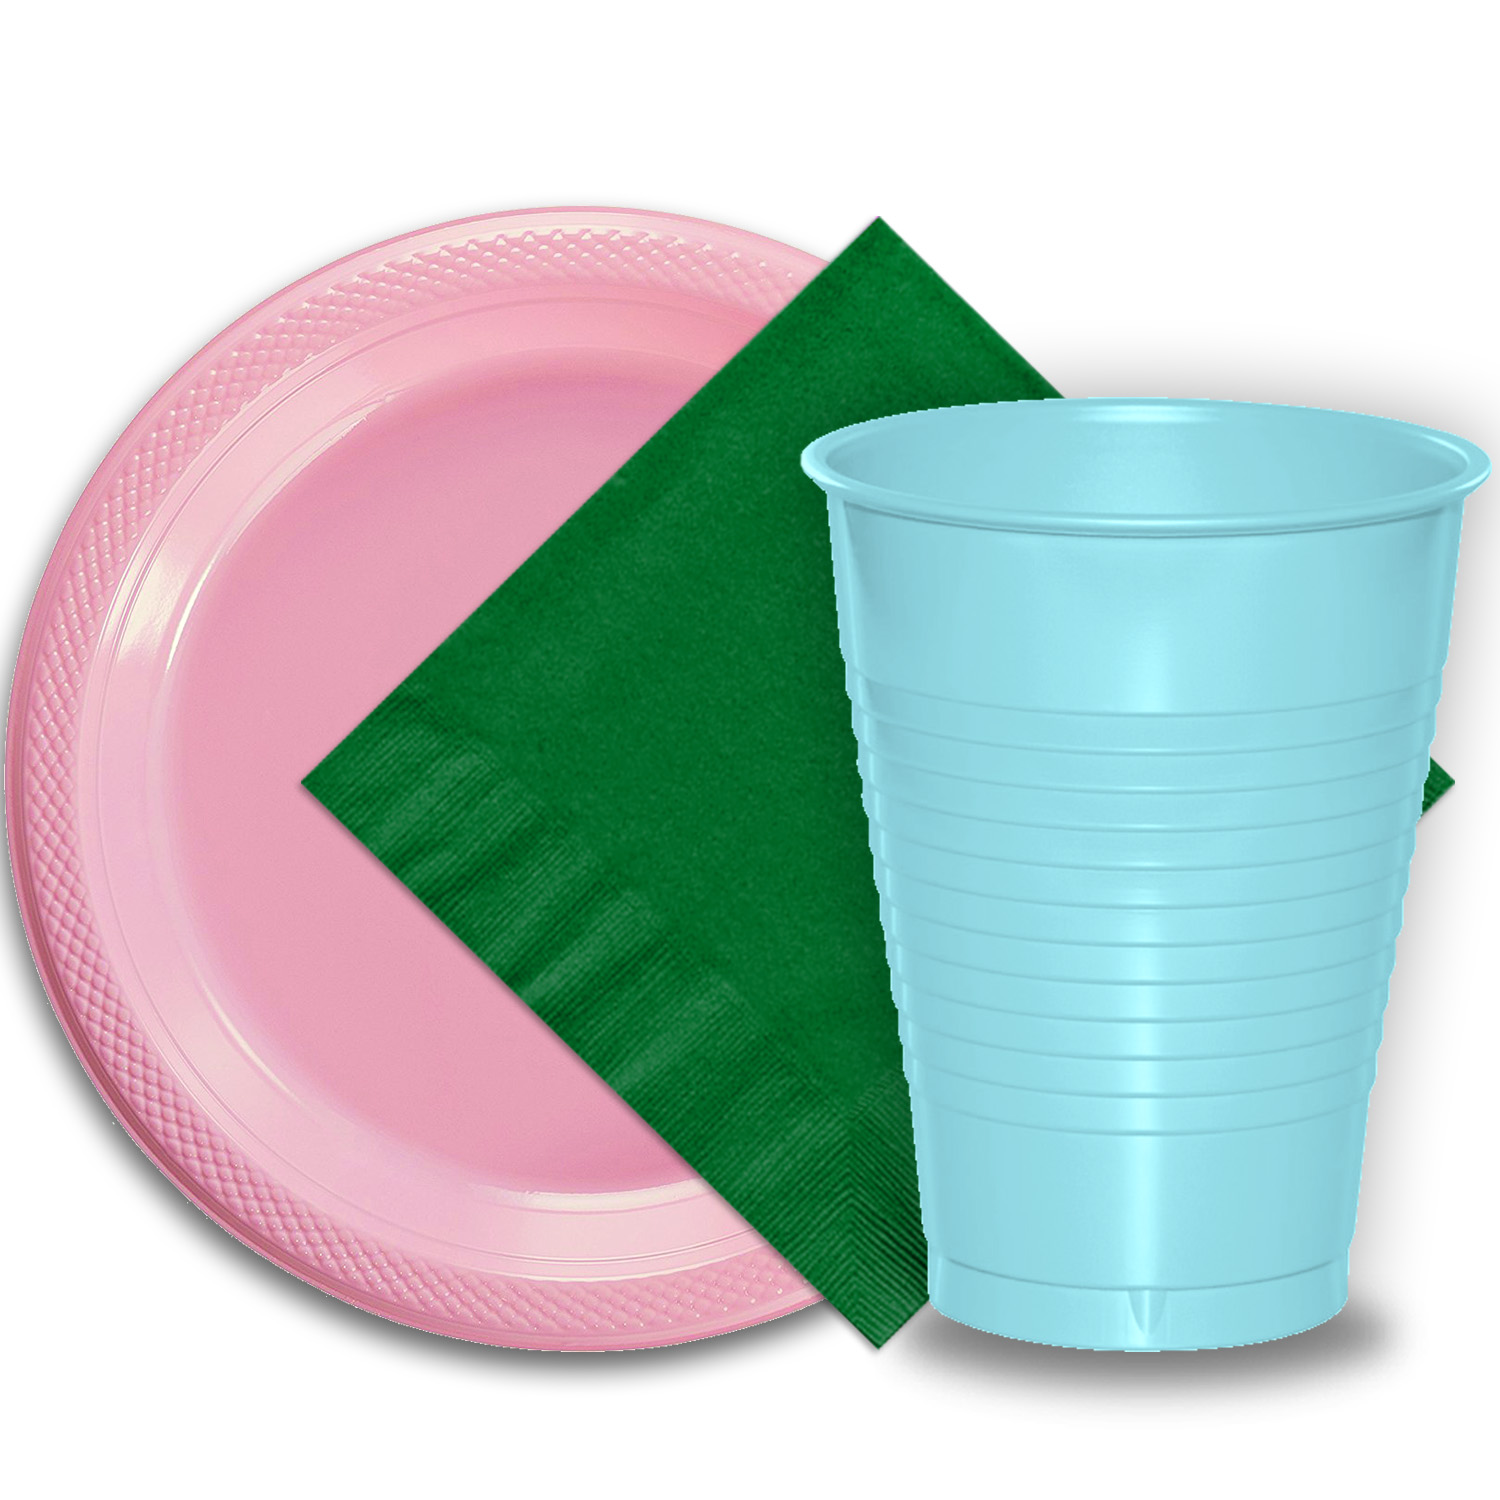 "50 Pink Plastic Plates (9""), 50 Light Blue Plastic Cups (12 oz.), and 50 Emerald Green Paper Napkins, Dazzelling Colored Disposable Party Supplies Tableware Set for Fifty Guests."